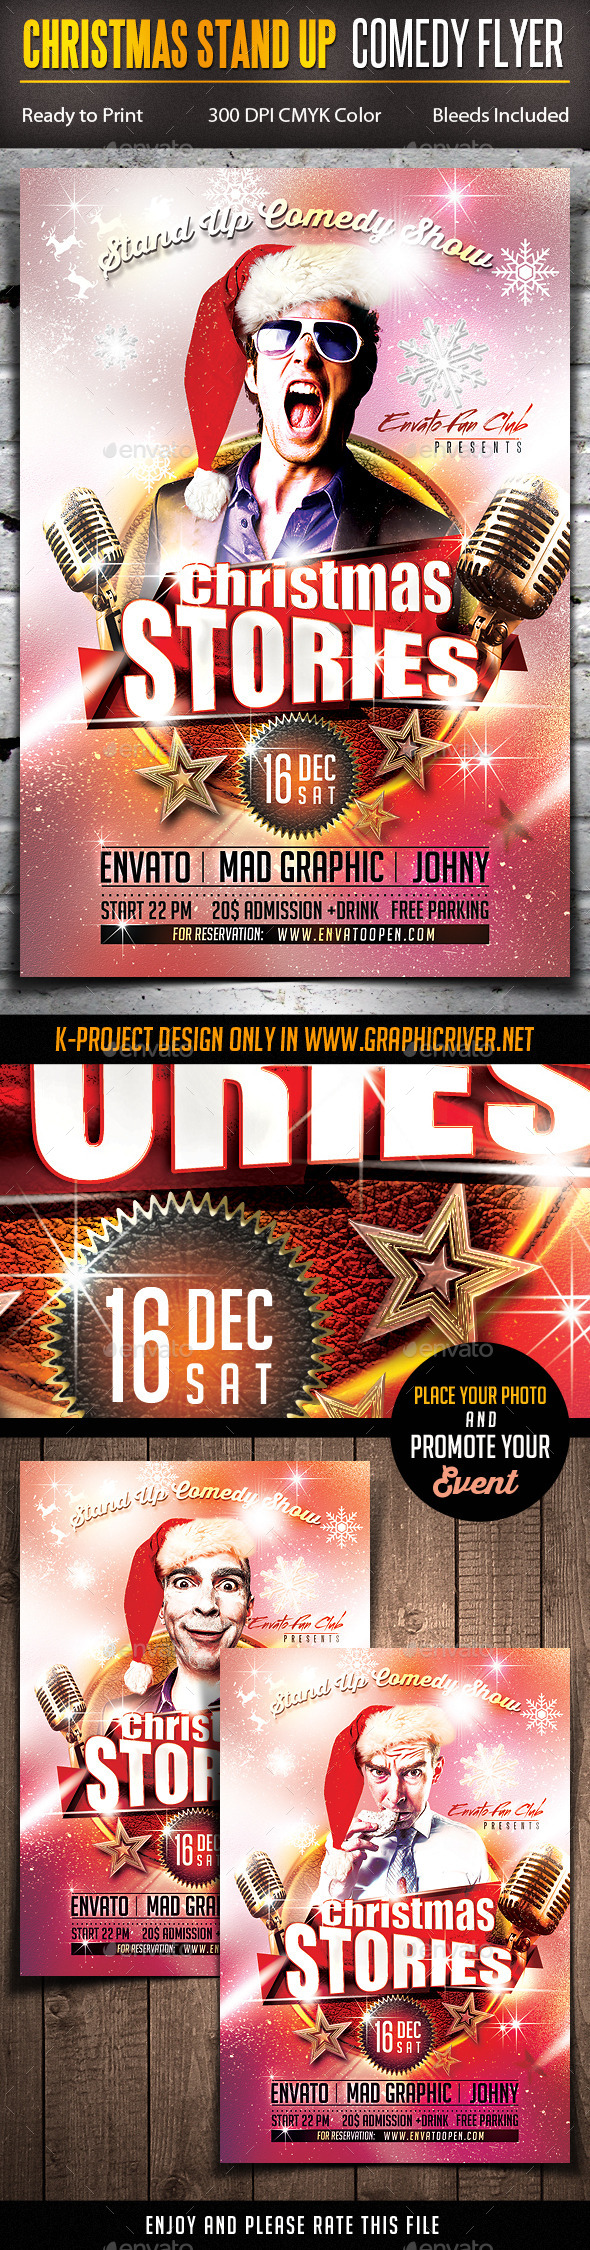 GraphicRiver Christmas Stand Up Comedy Flyer 9595748